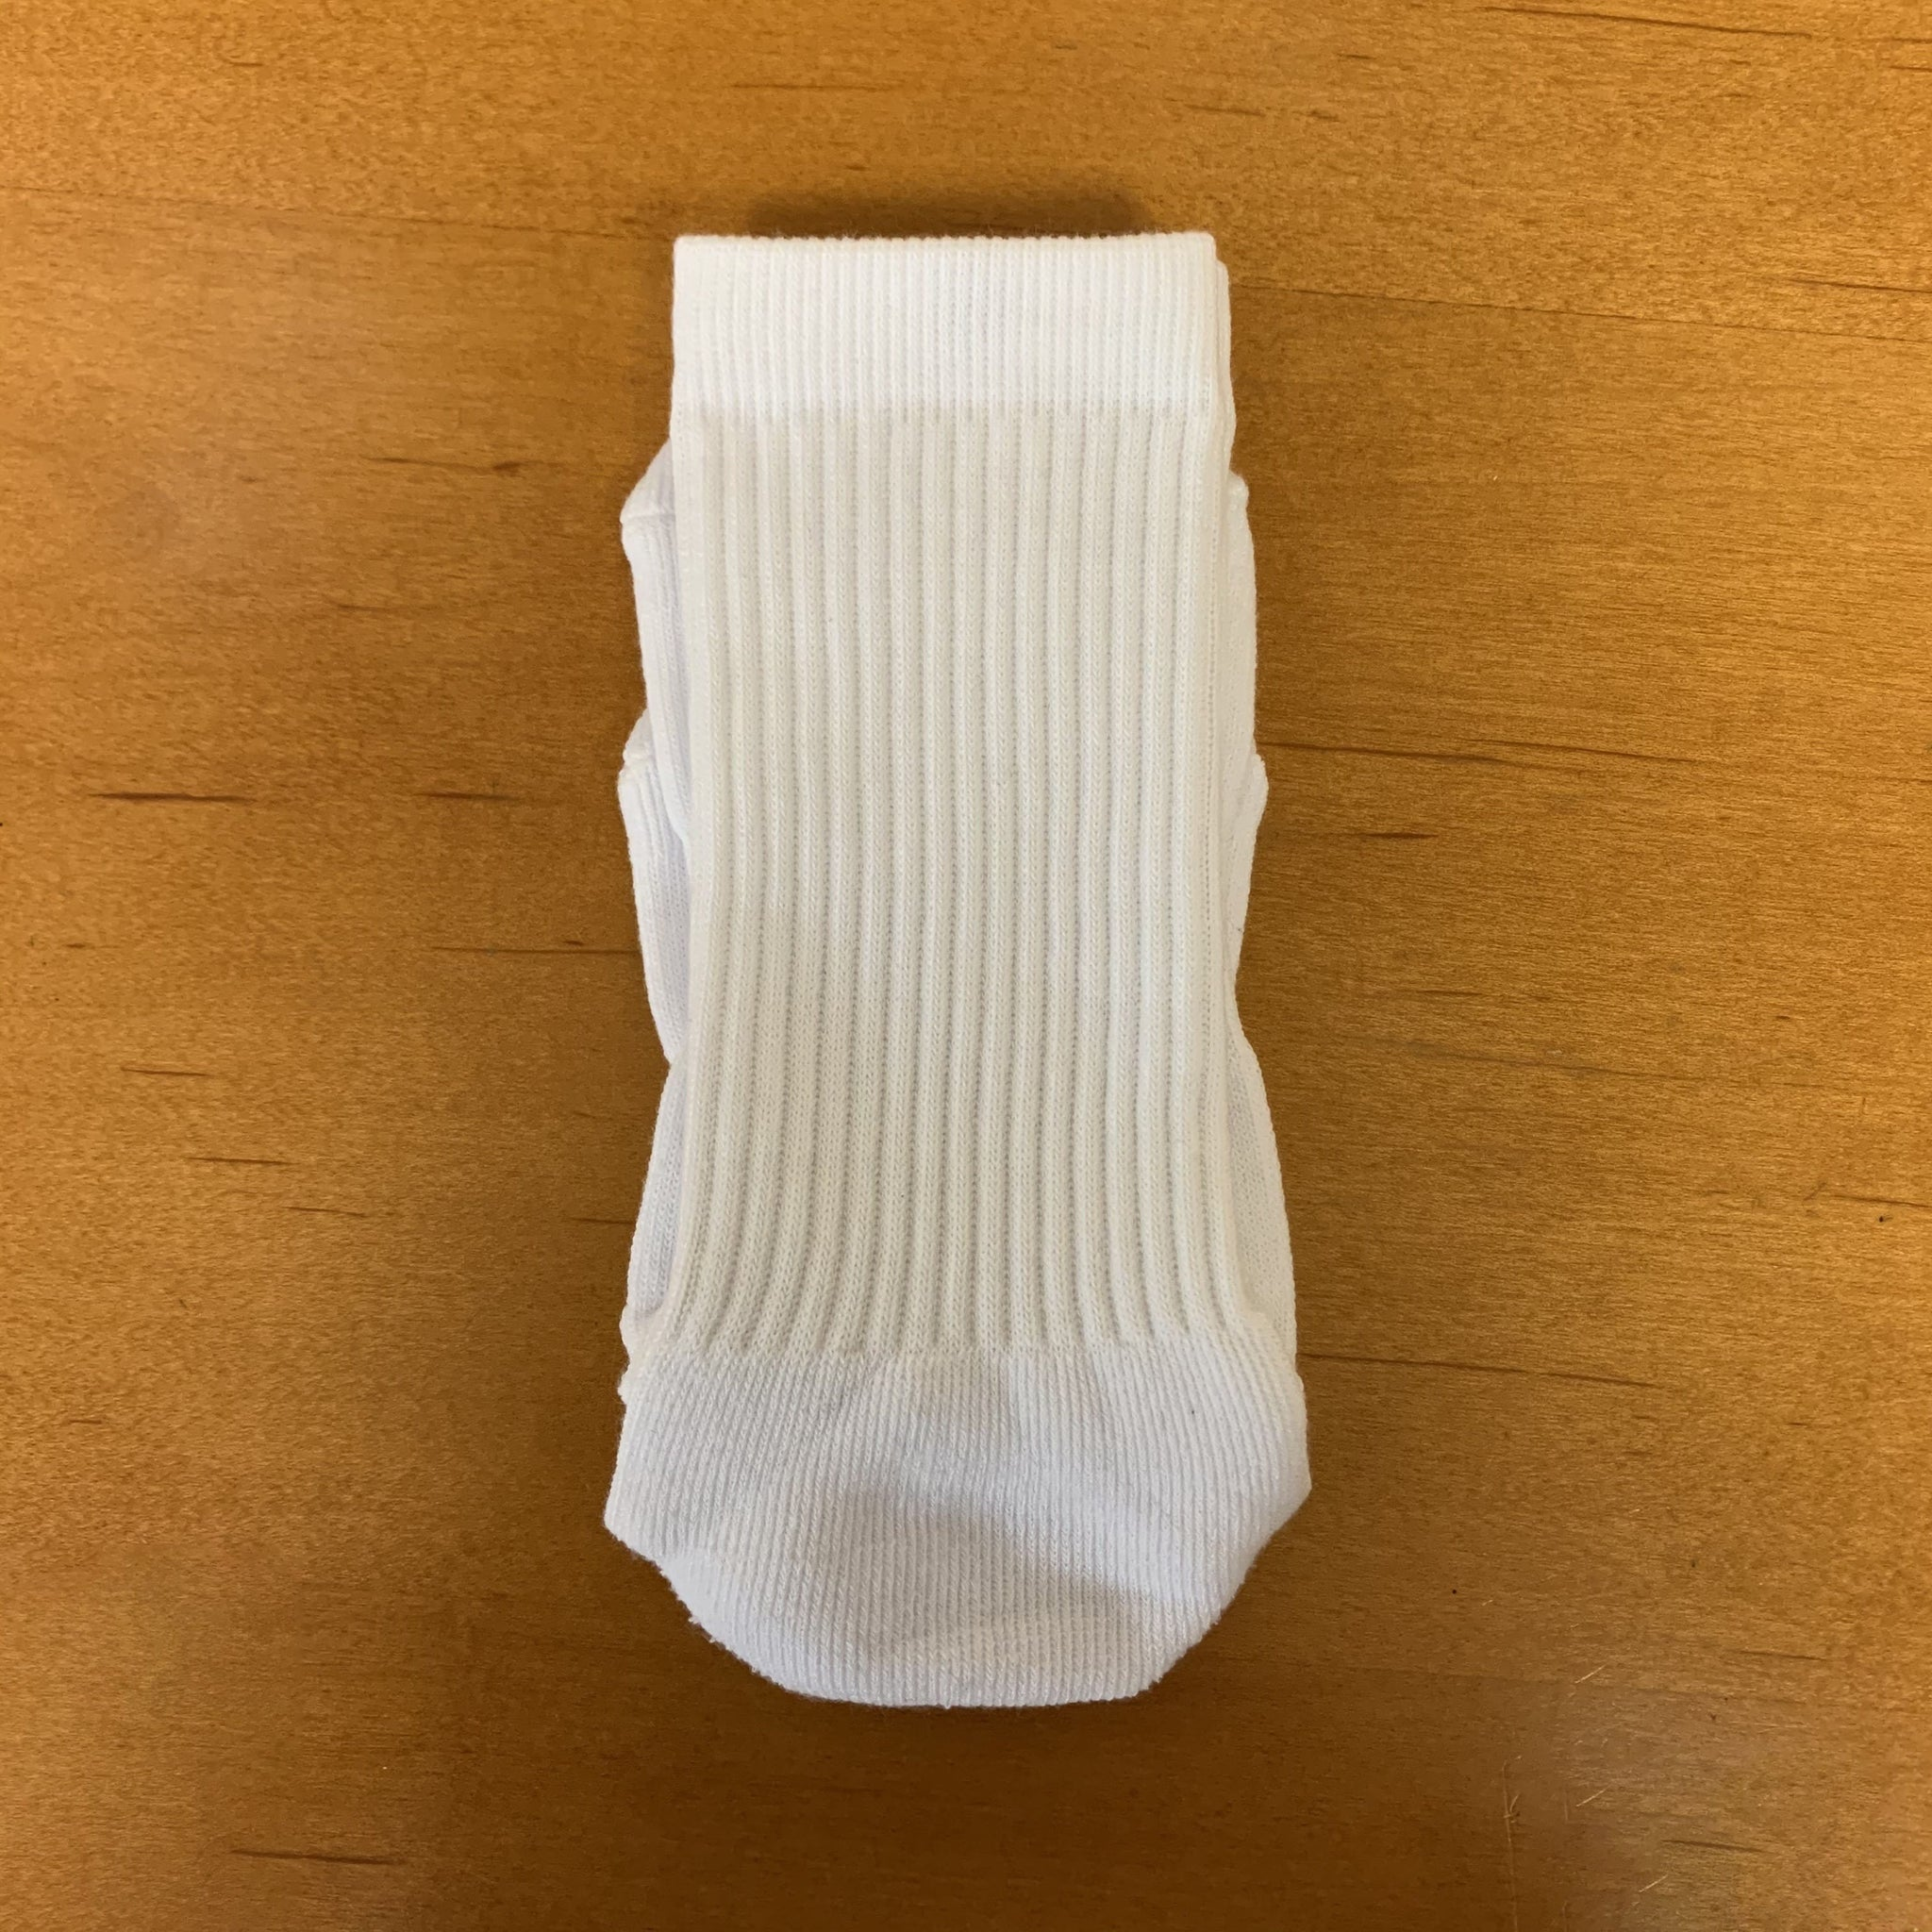 V1 Small Streetwear Socks- Discontinued Model - CLEARANCE